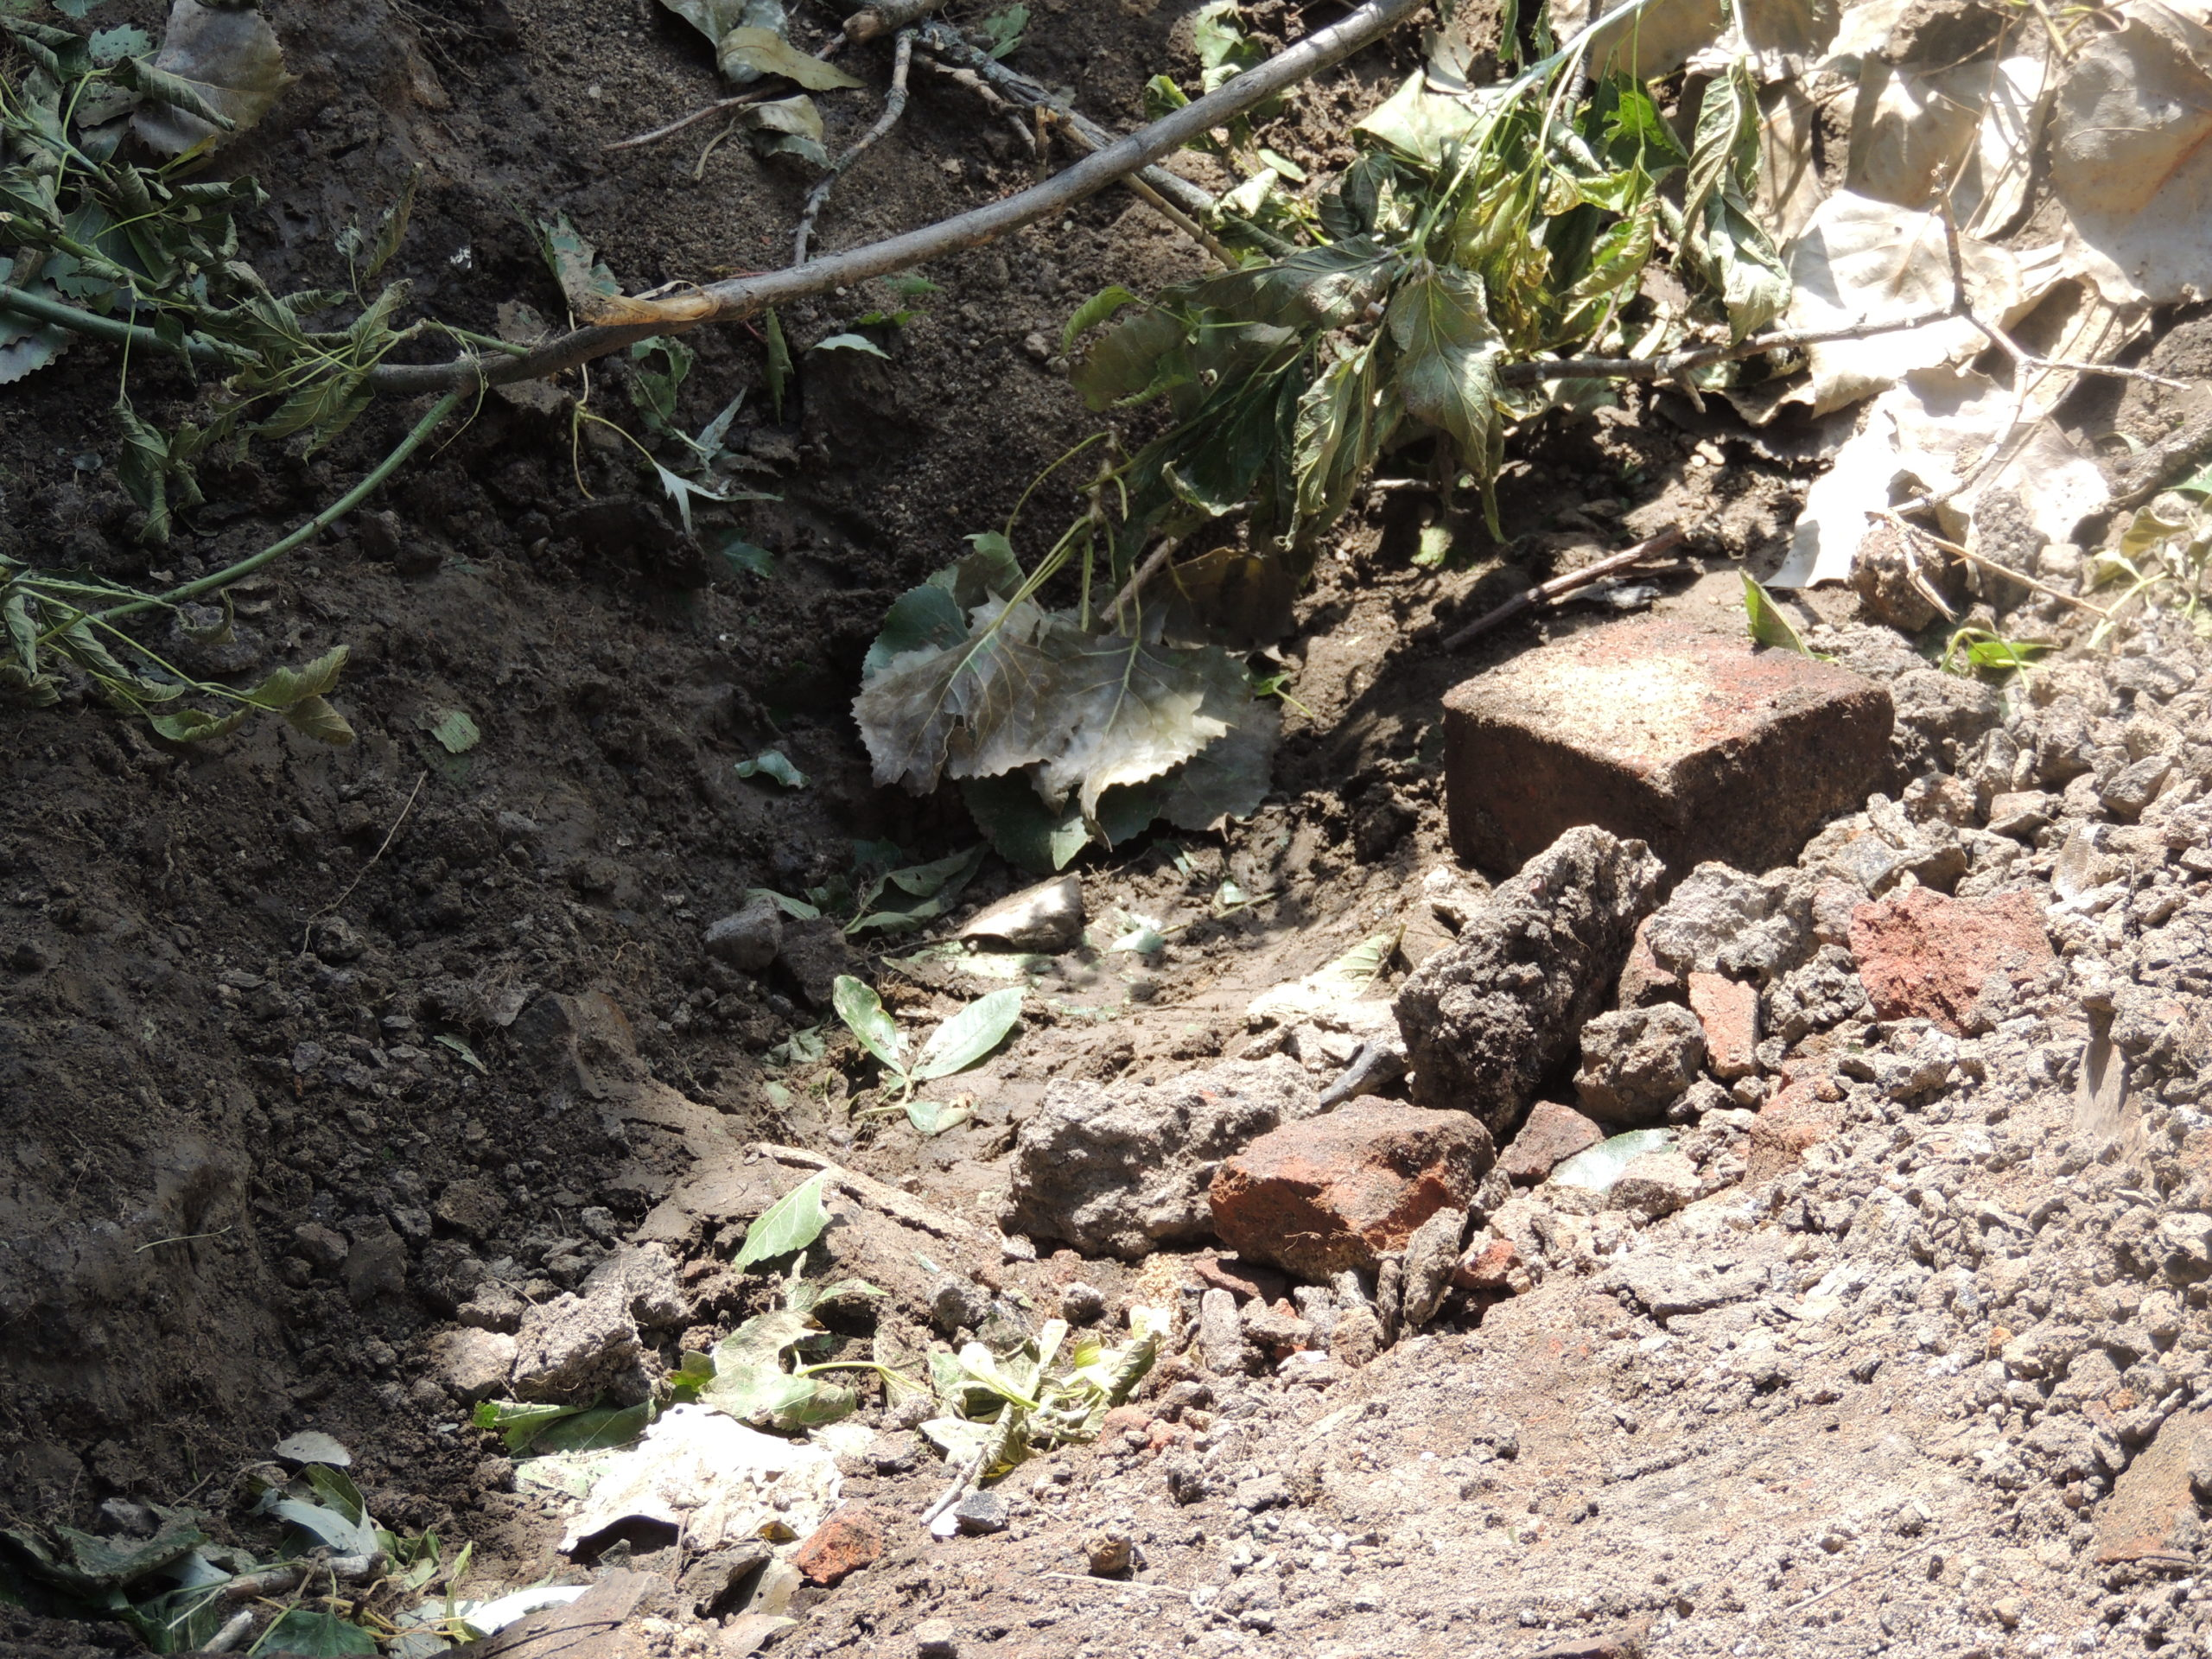 Photo of uprooted tree debris